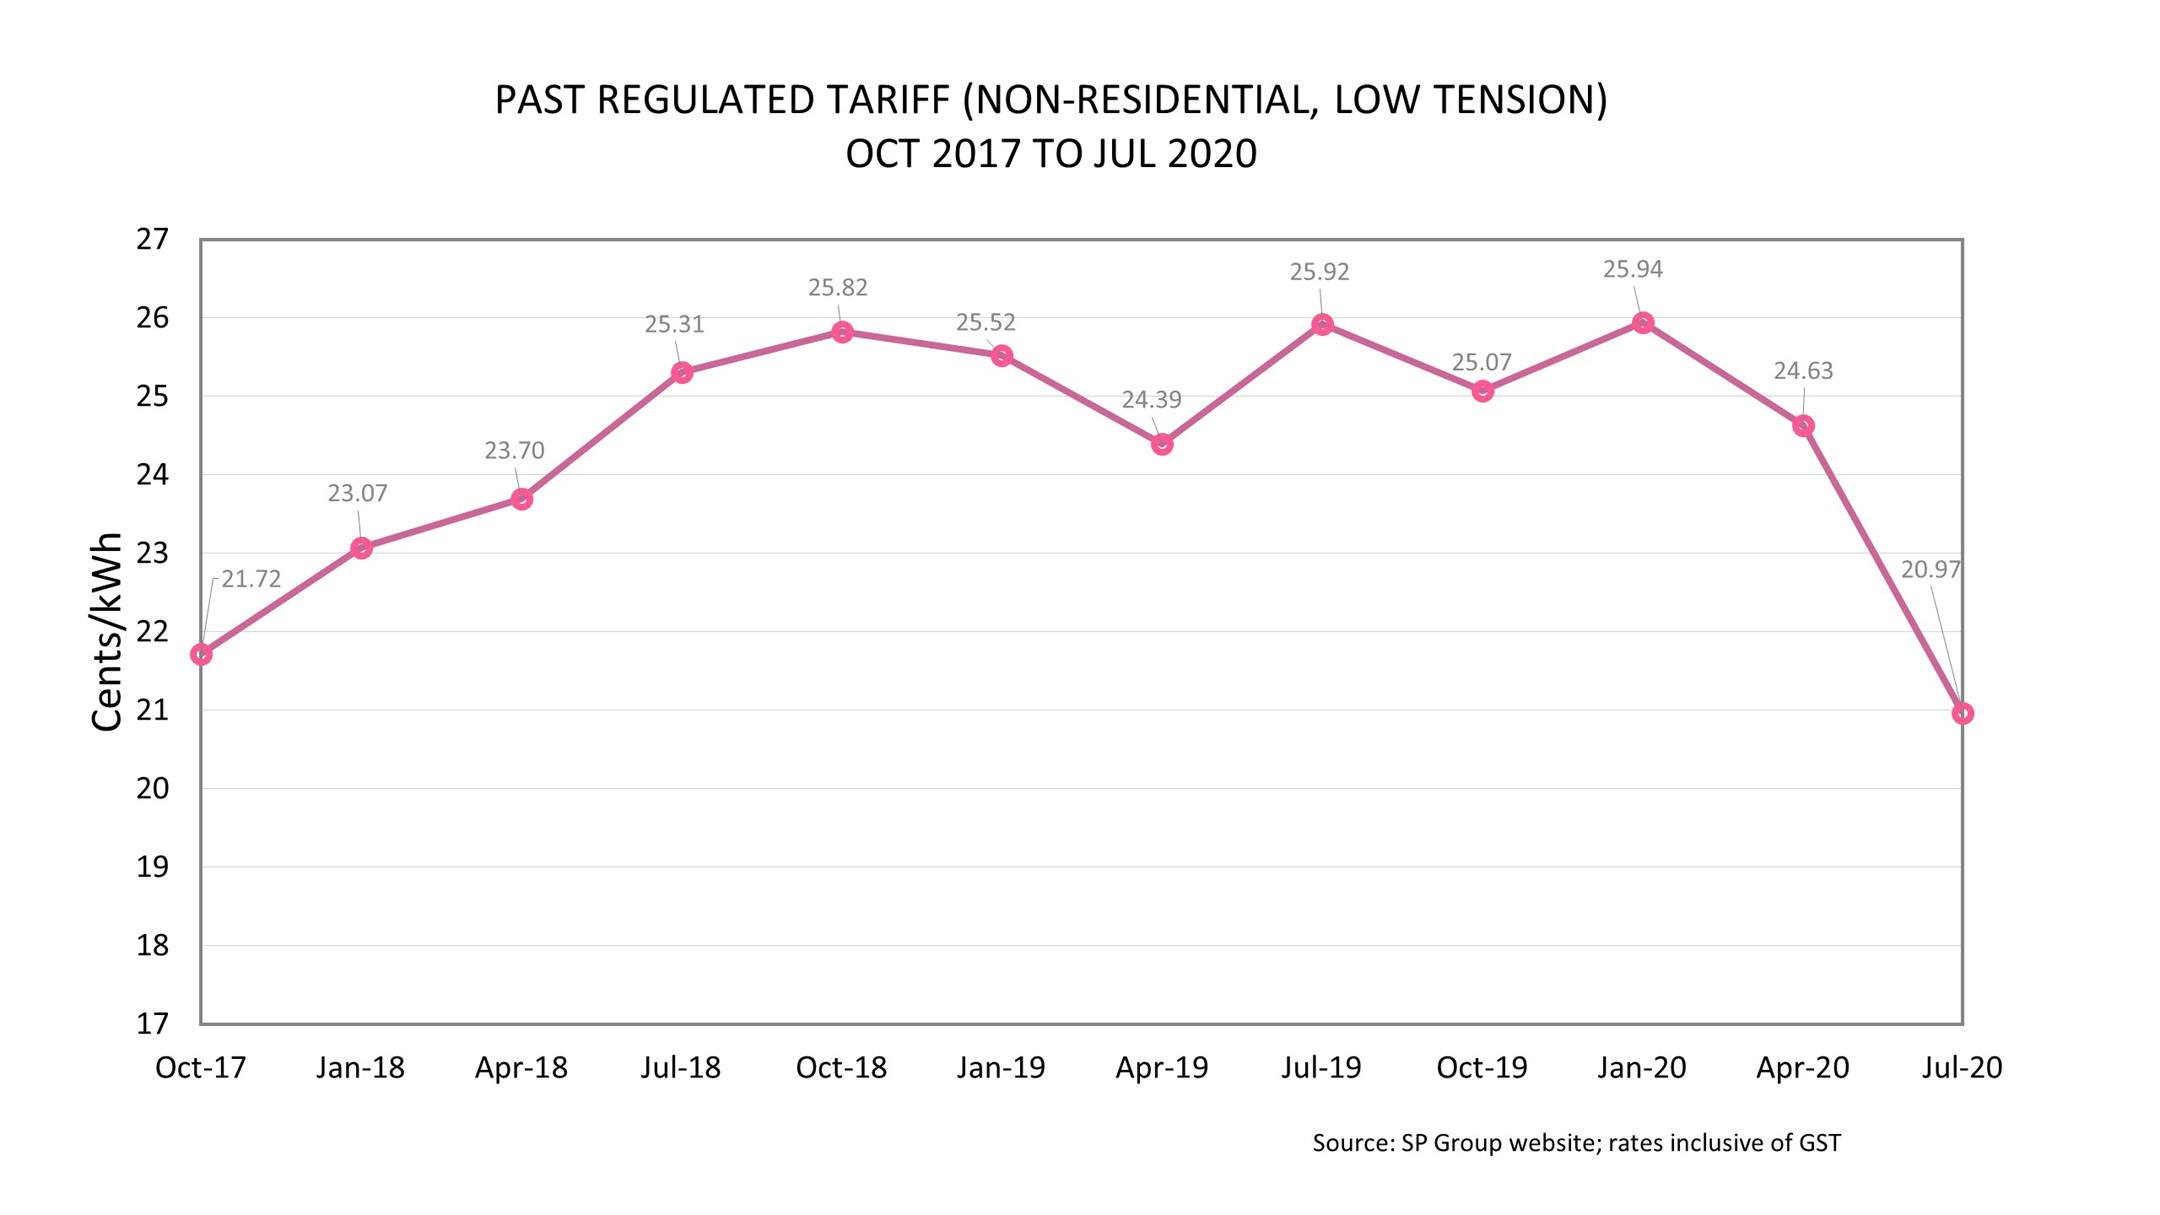 Non-Residential Regulated Tariff Trend Chart Q3 2020